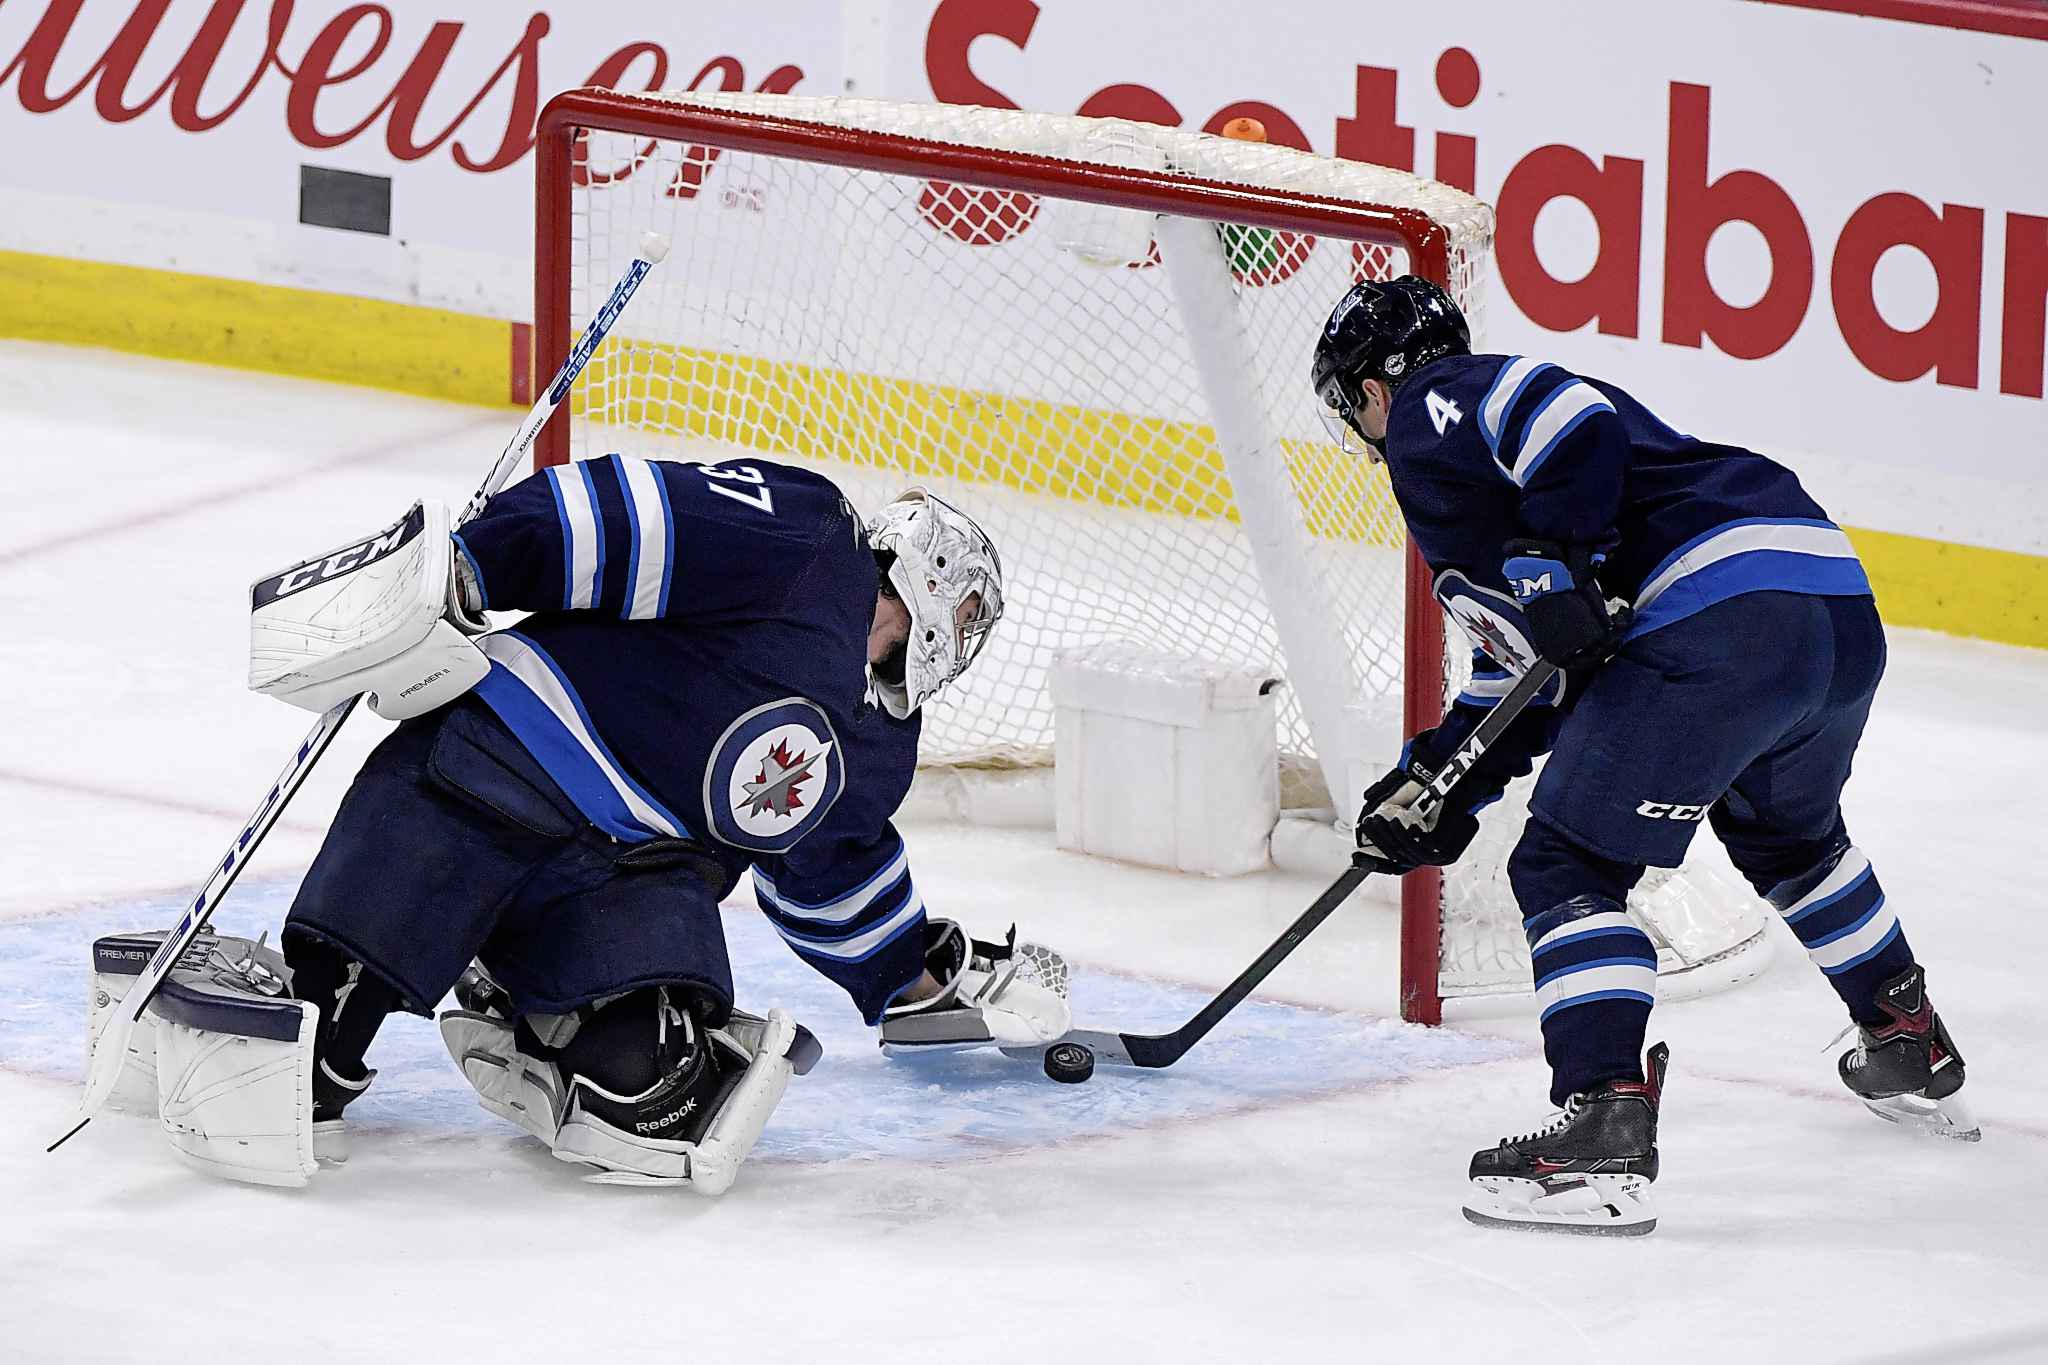 Winnipeg Jets' goaltender Connor Hellebuyck stopped 28 shots for his first shutout of the season.